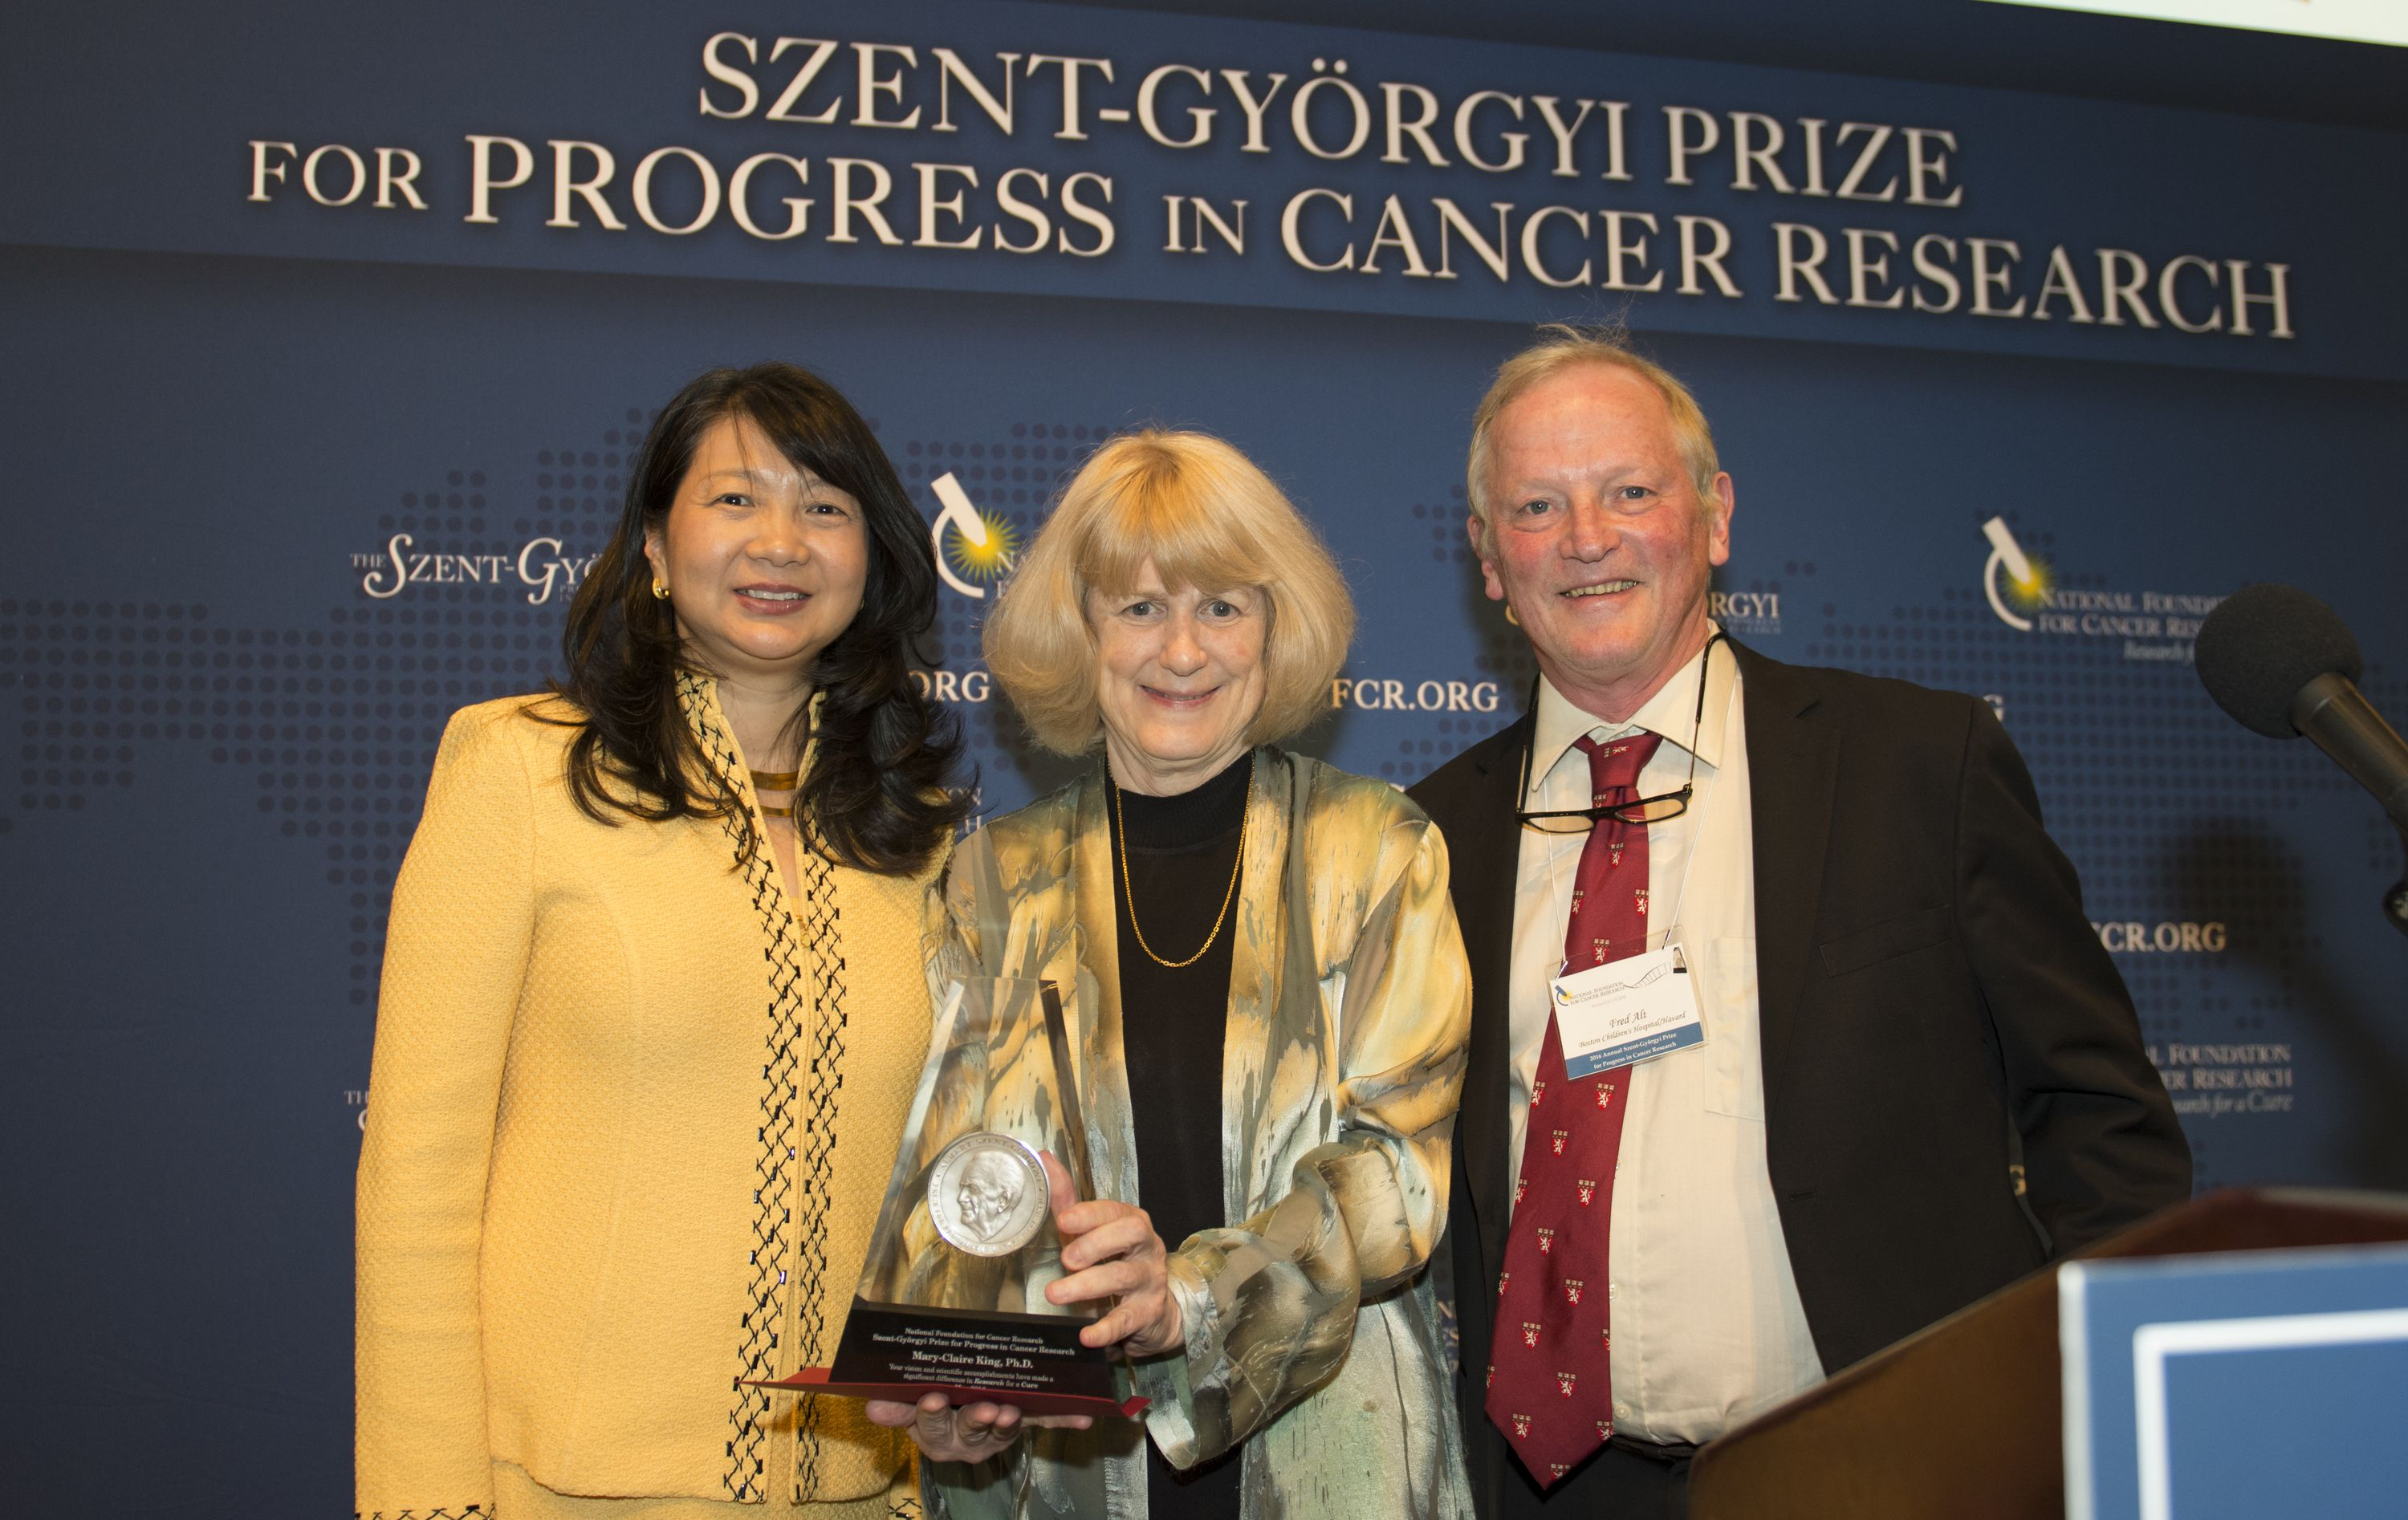 Dr. King accepts the Szent-Gyorgyi Prize with great pleasure